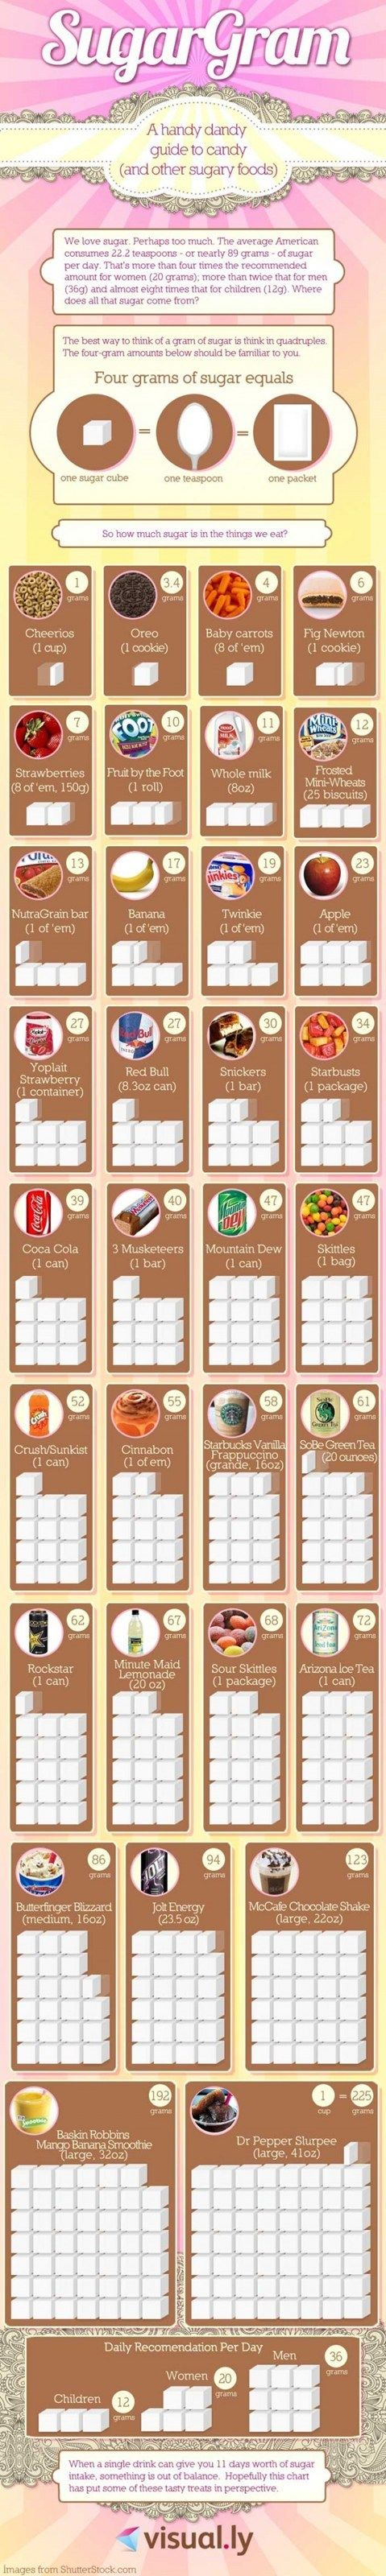 How Much Sugar Are you Eating? #infografía